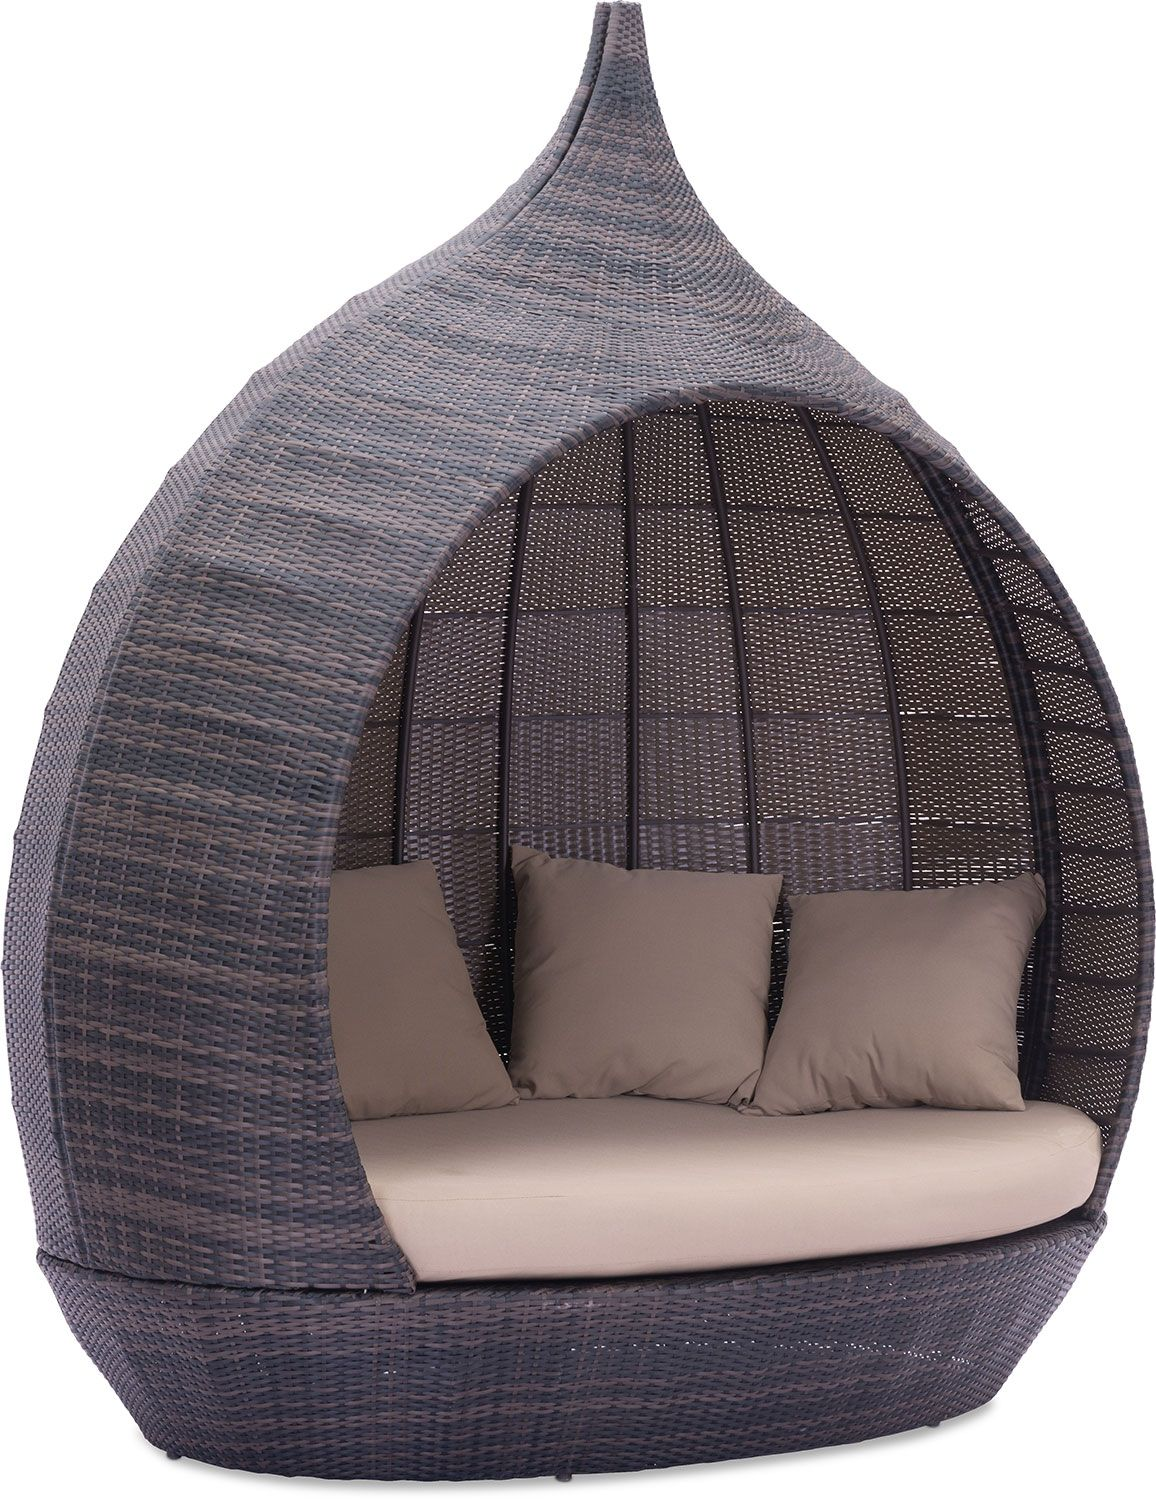 Outdoor furniture renly outdoor daybed brown spring u patio